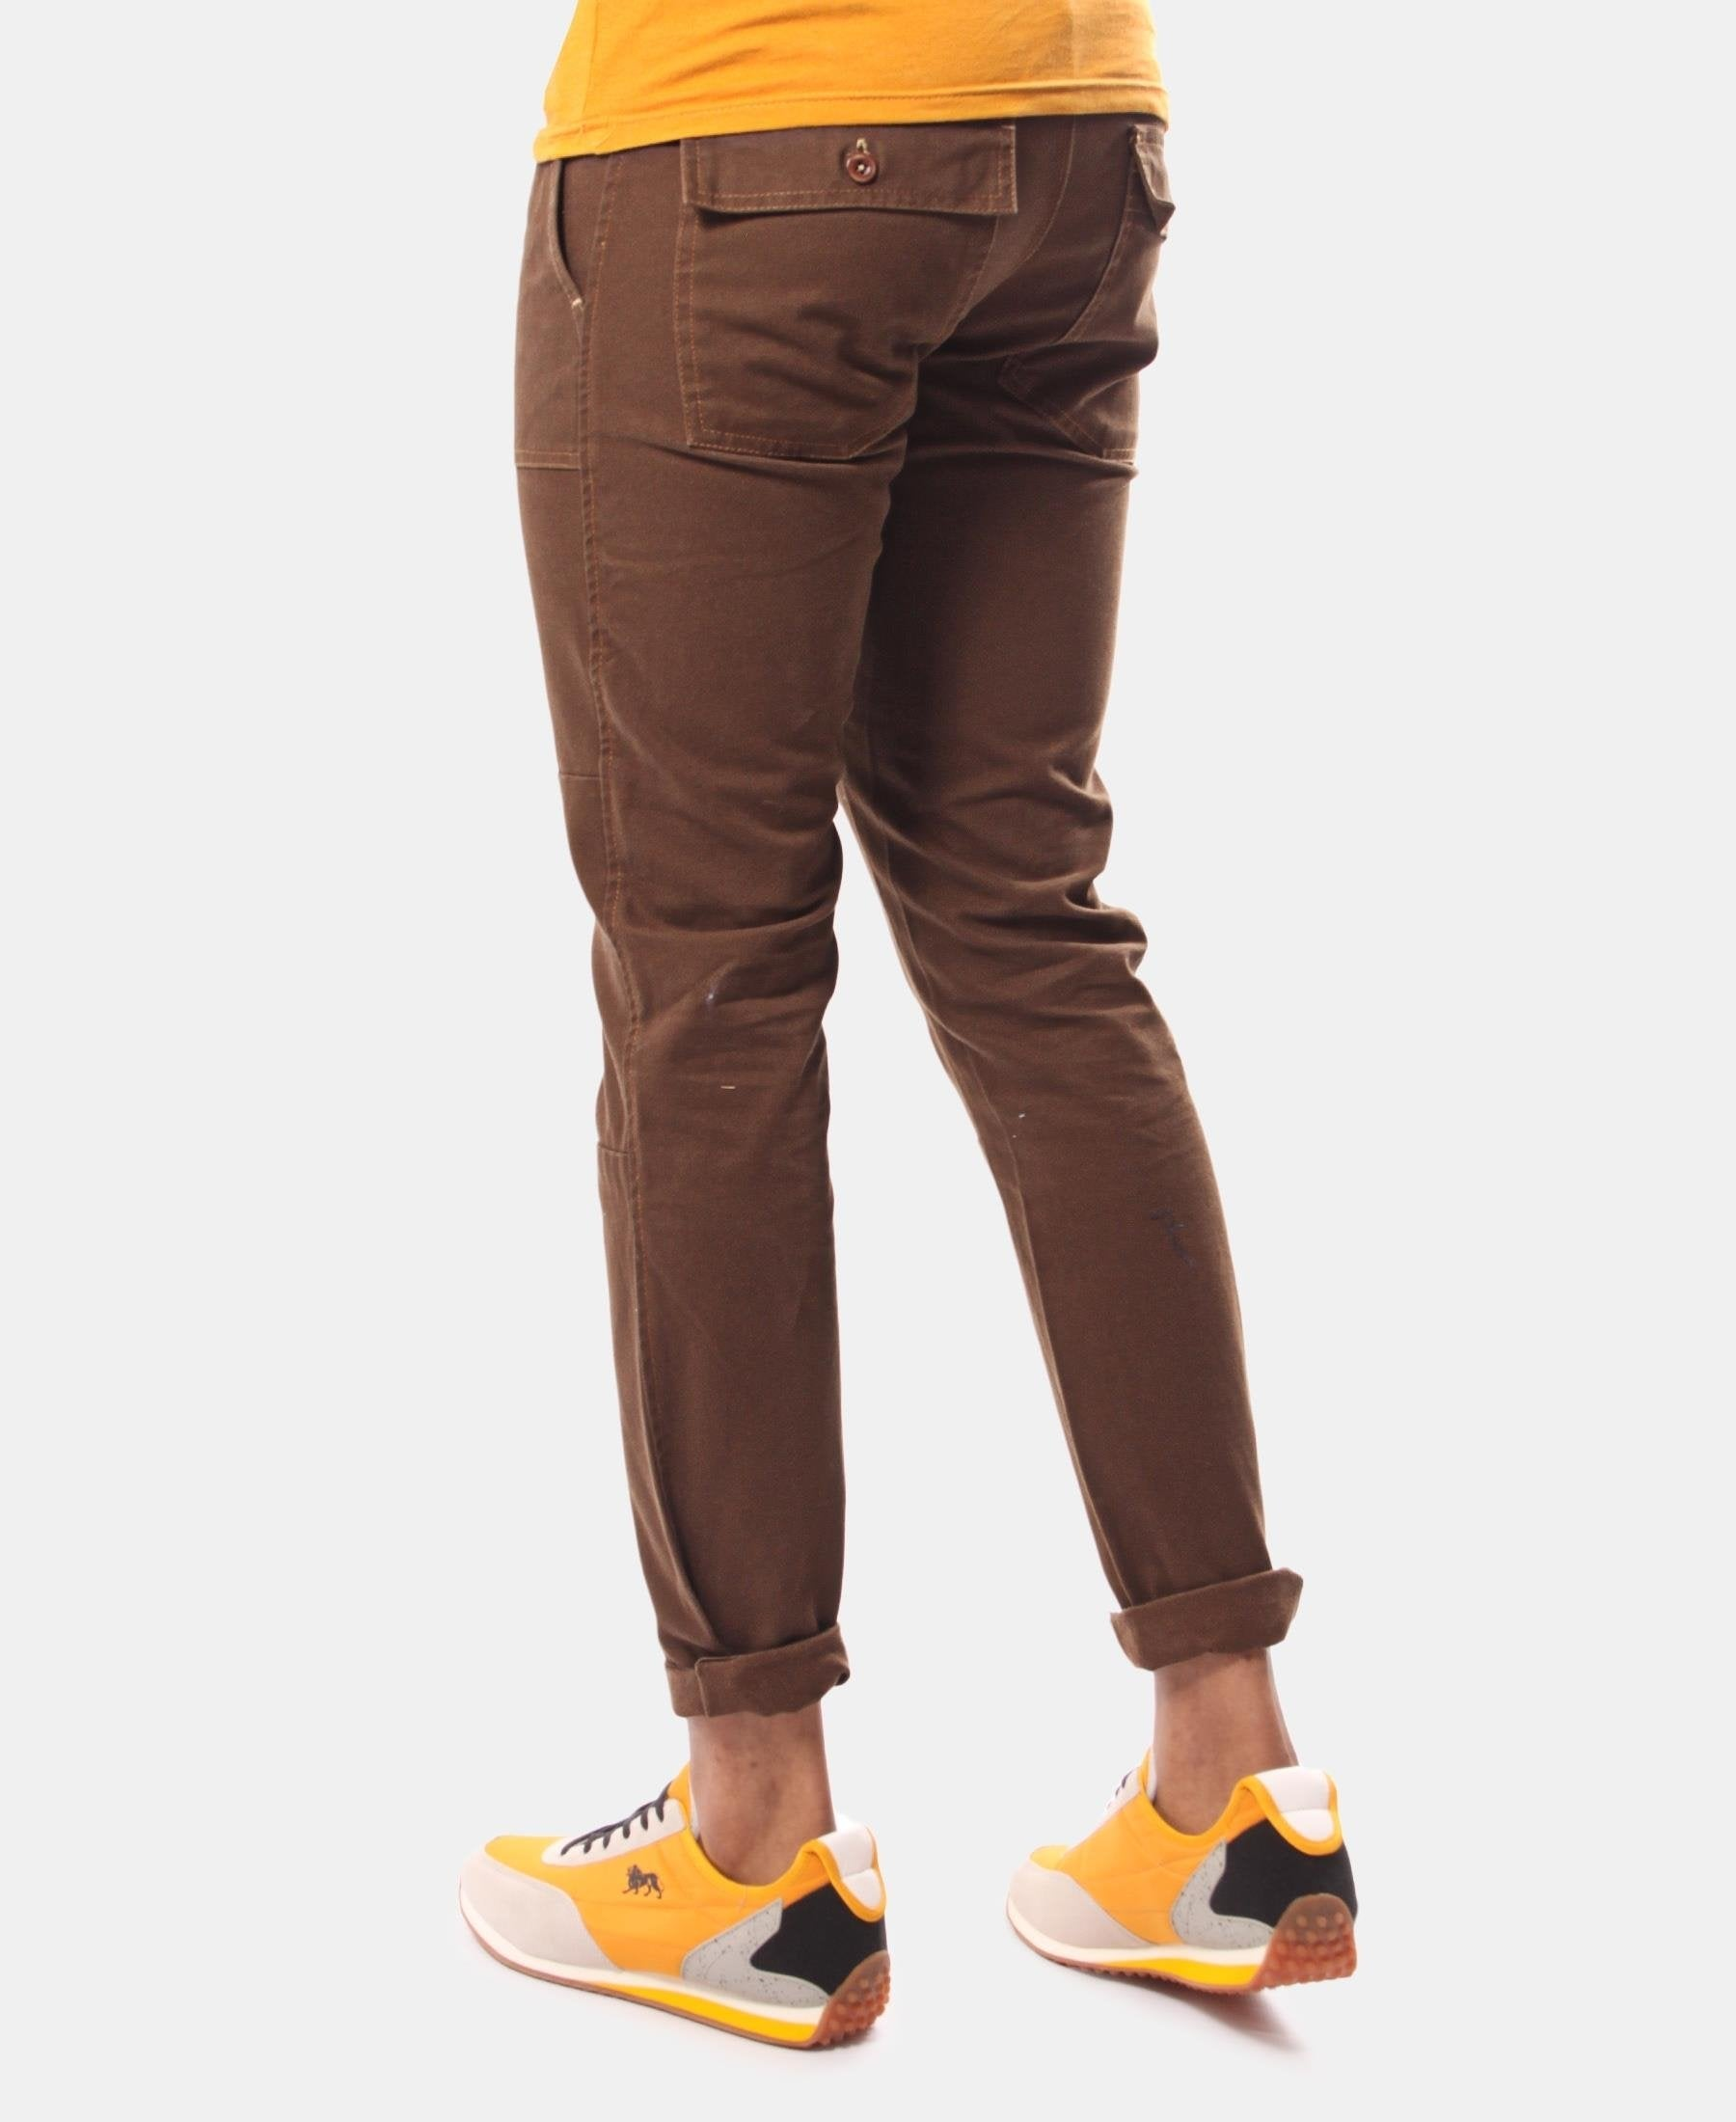 Men's Casual Pants - Choc